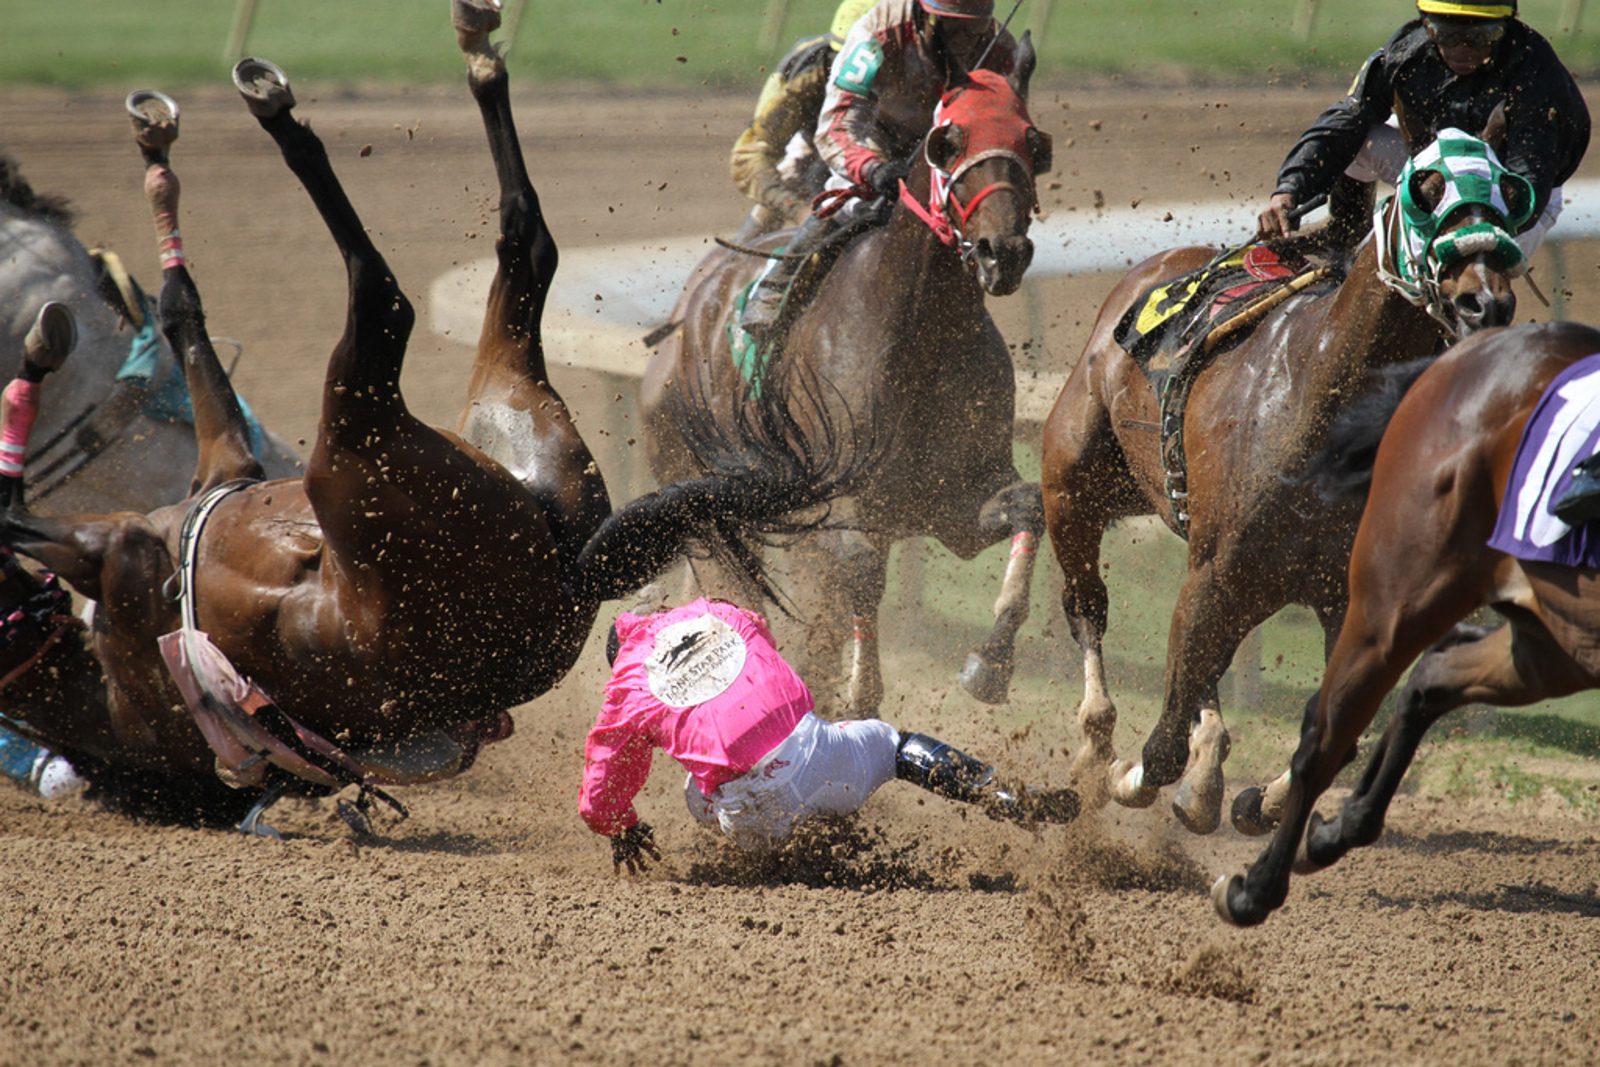 5 Myths the Horseracing Industry Spreads